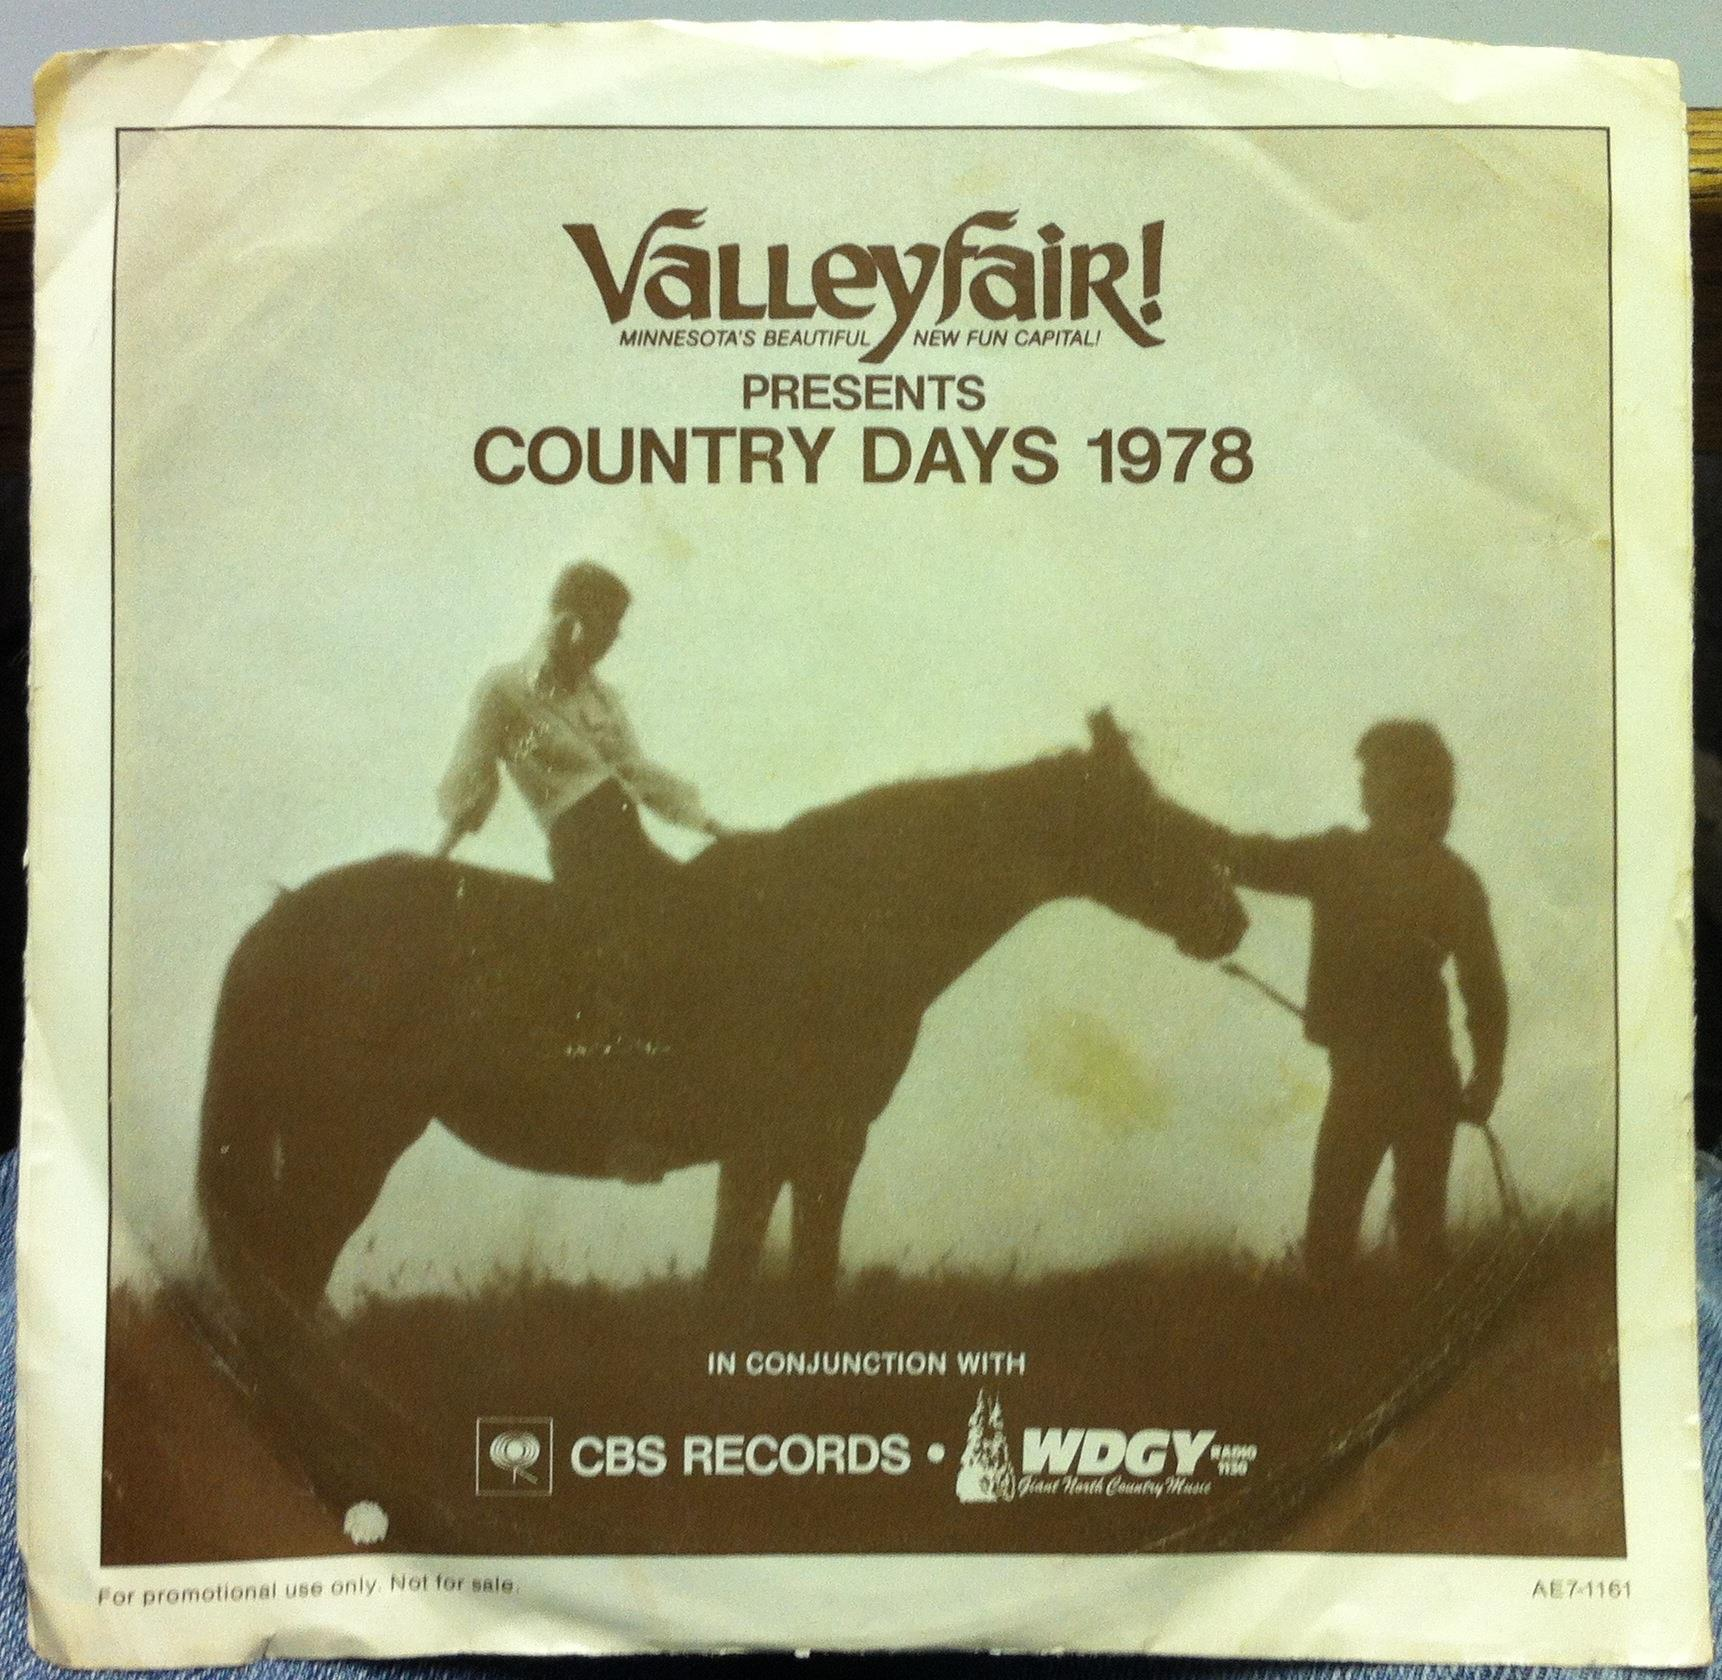 VALLEYFAIR CBS Promo Country Days 1978 EP 7quot VG AE7 1161  : 19866954 from www.ebay.com size 1722 x 1680 jpeg 396kB